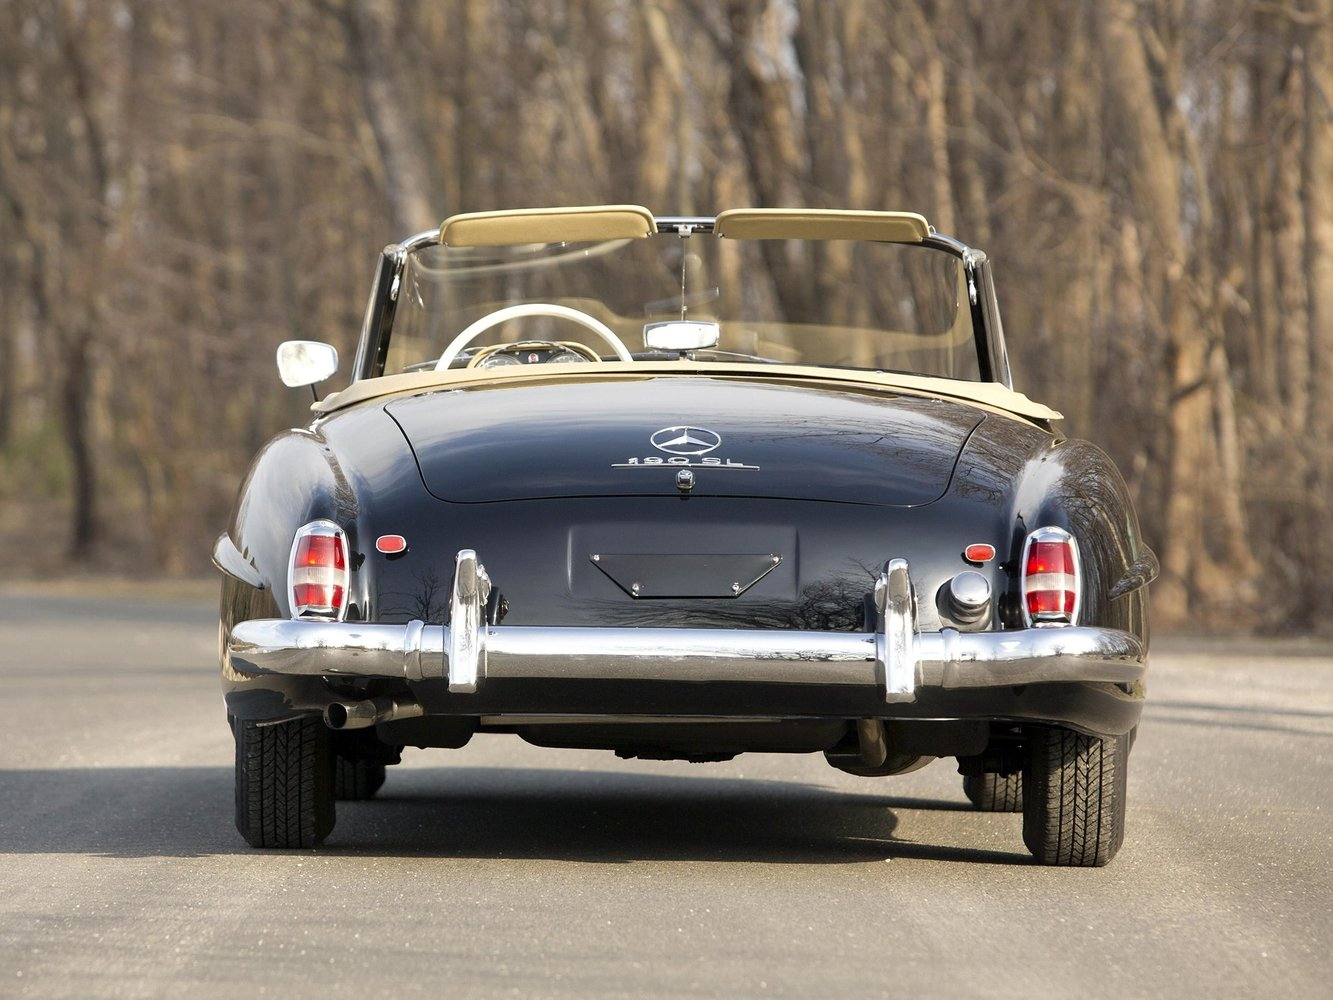 купе Mercedes-Benz 190 SL 1955 - 1963г выпуска модификация 1.9 MT (105 л.с.)